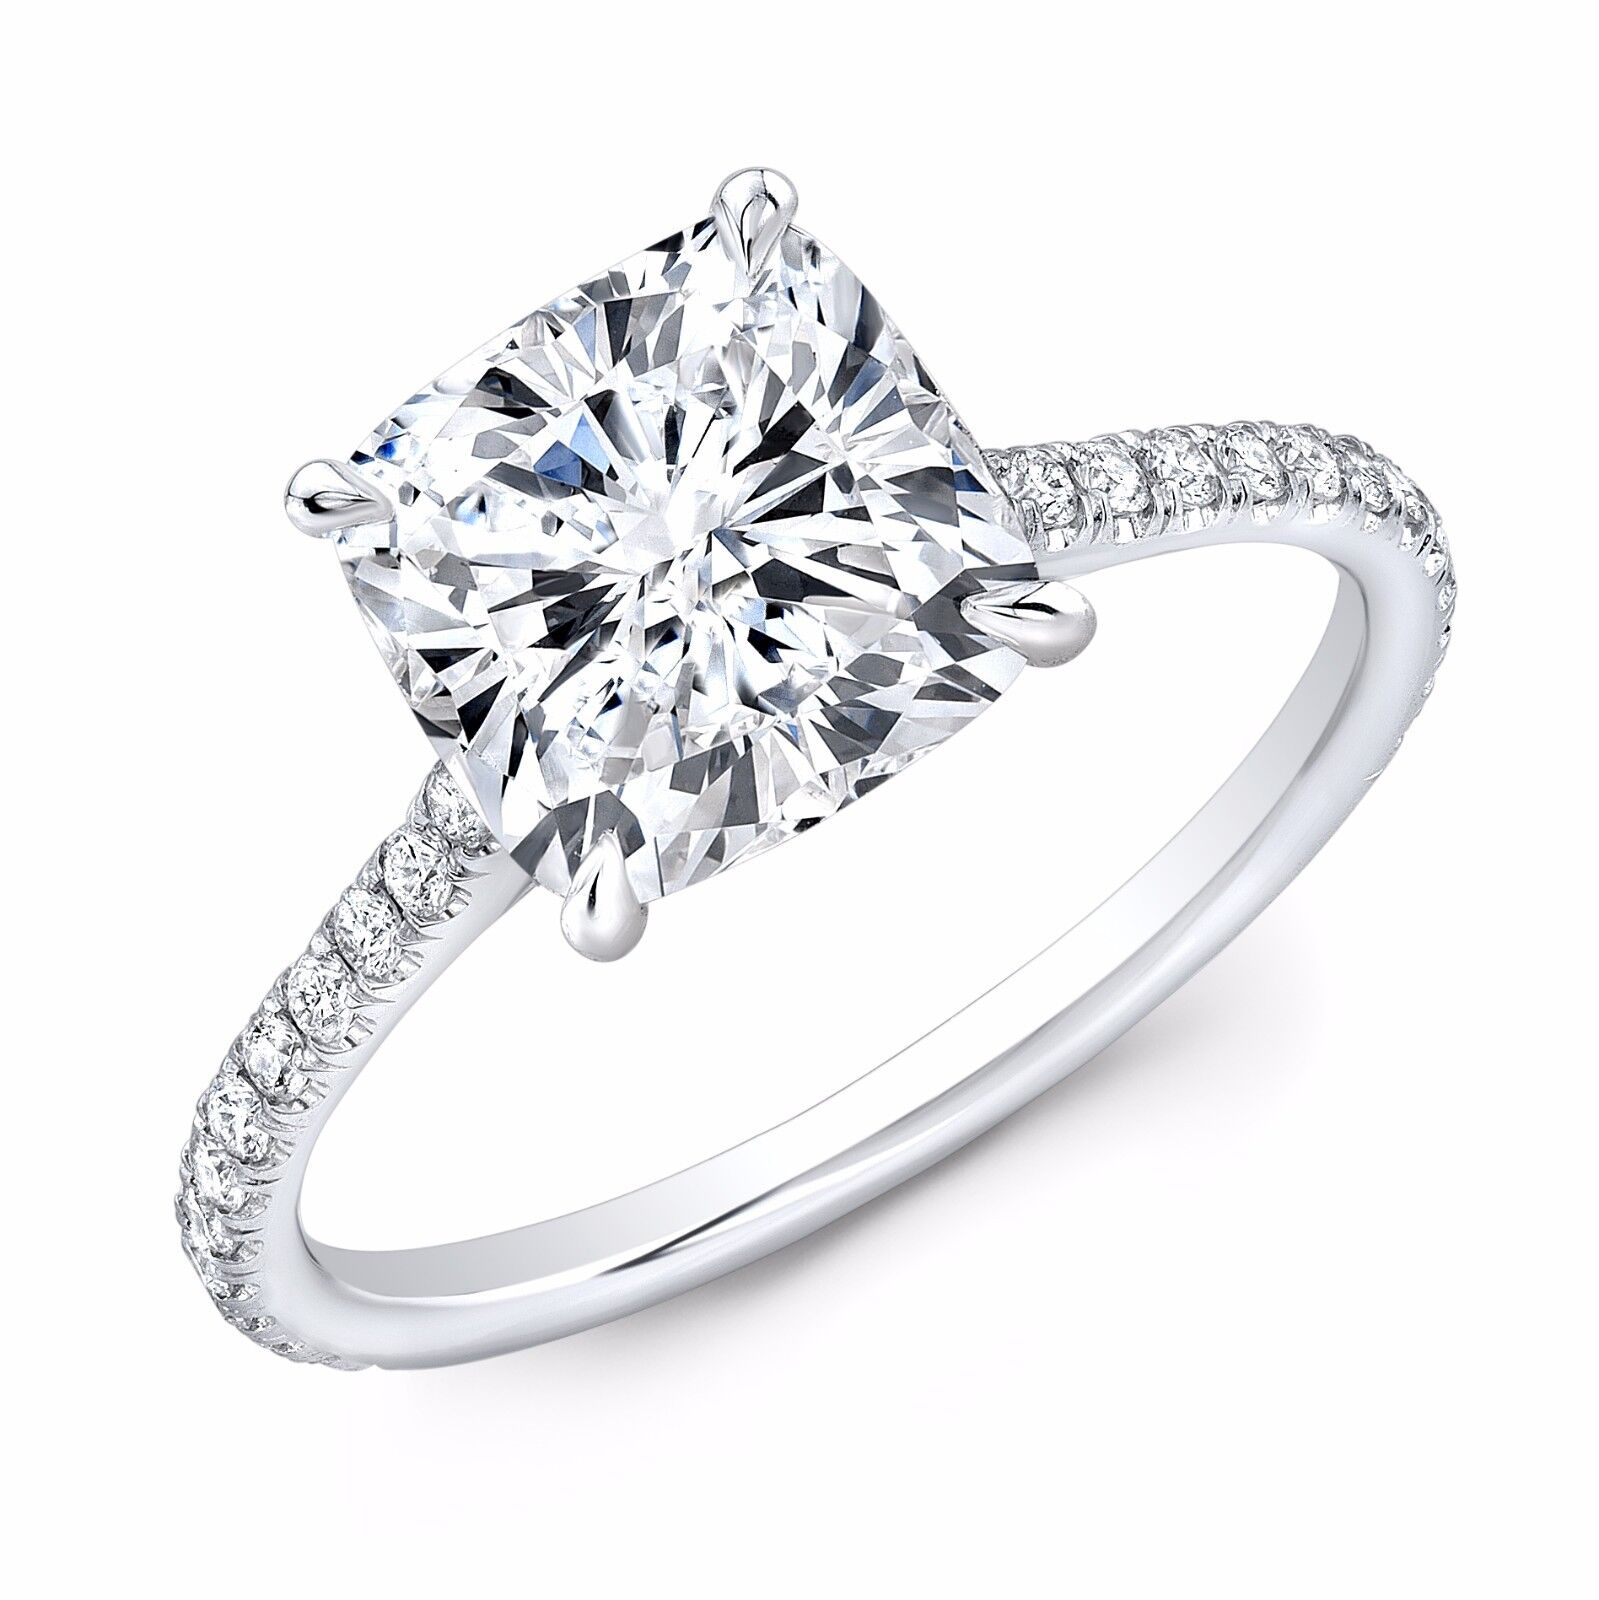 1.50ctw Natural Cushion Pave Diamond Engagement Ring - GIA Certified